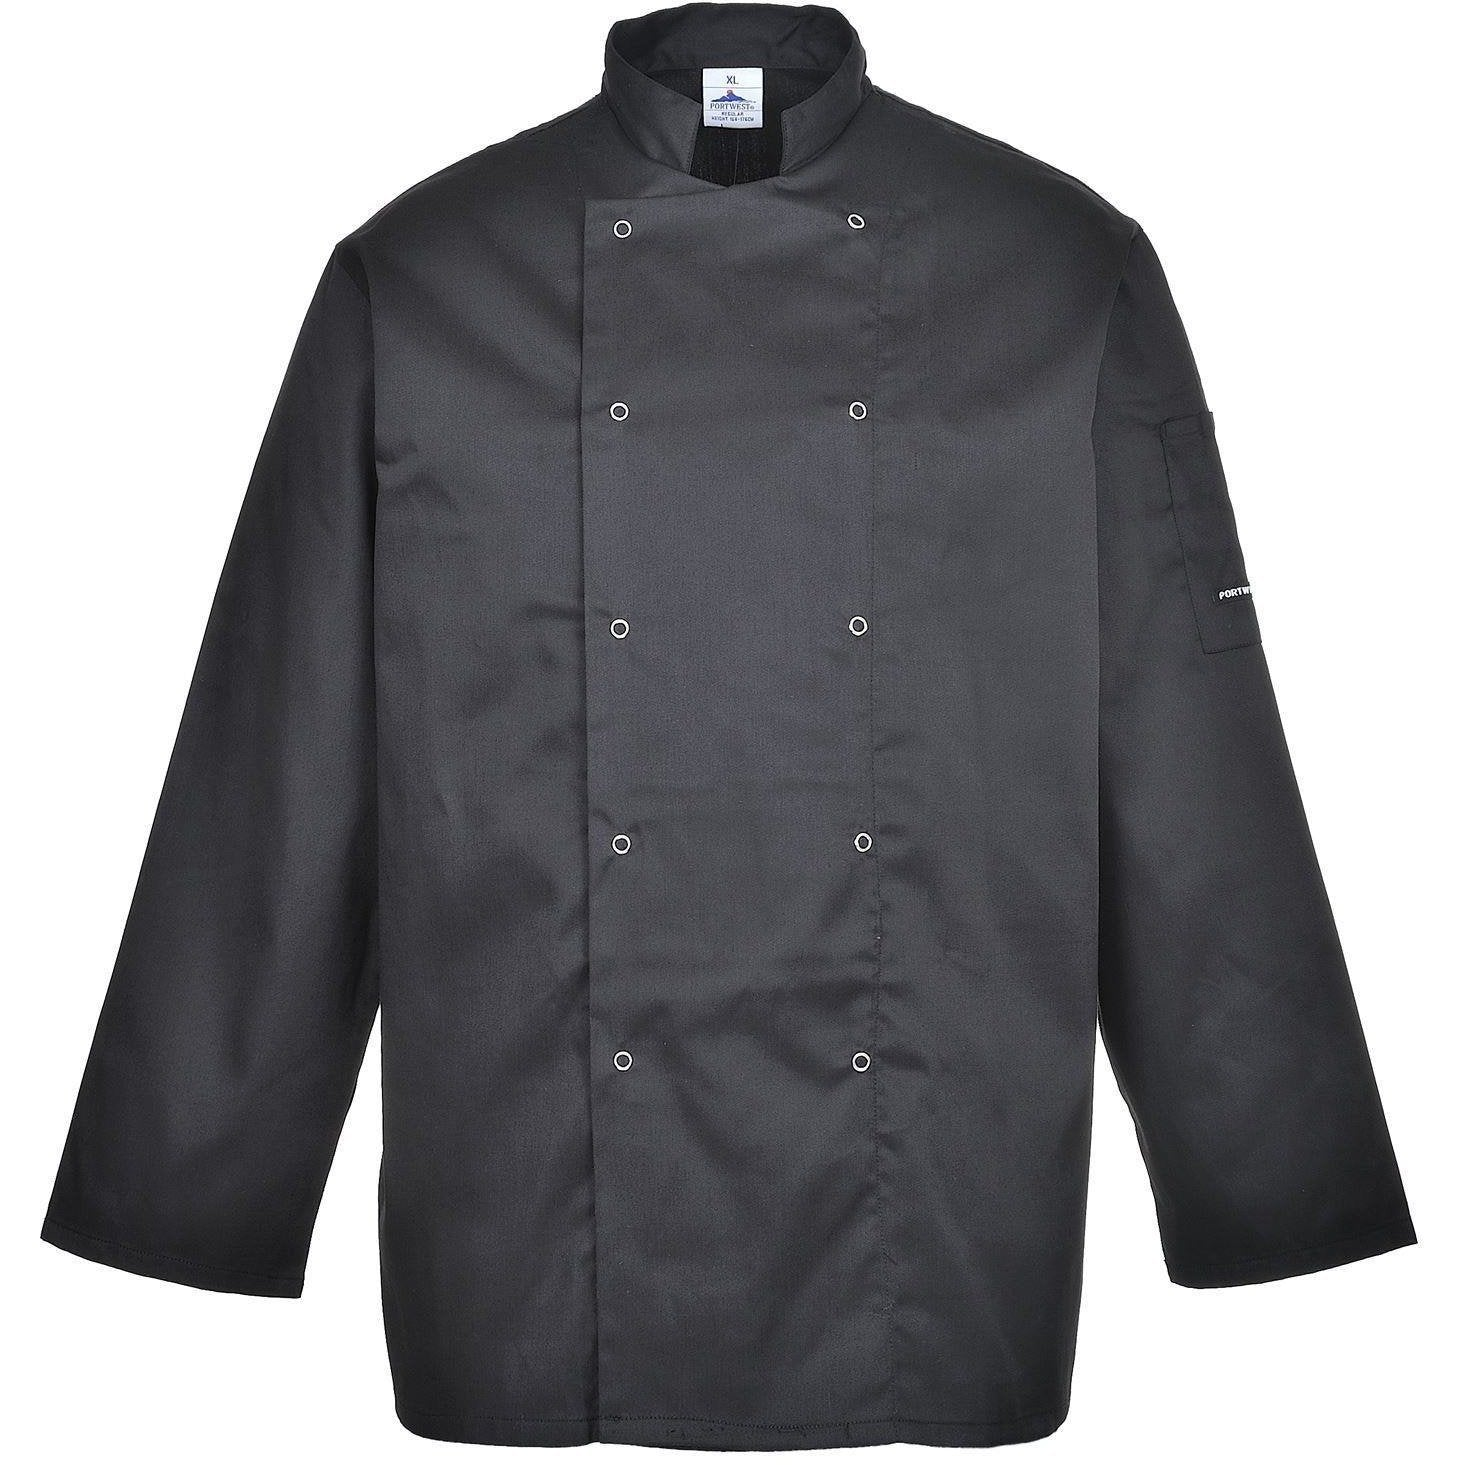 Portwest Suffolk Chefs Jacket C833 - reid outdoors